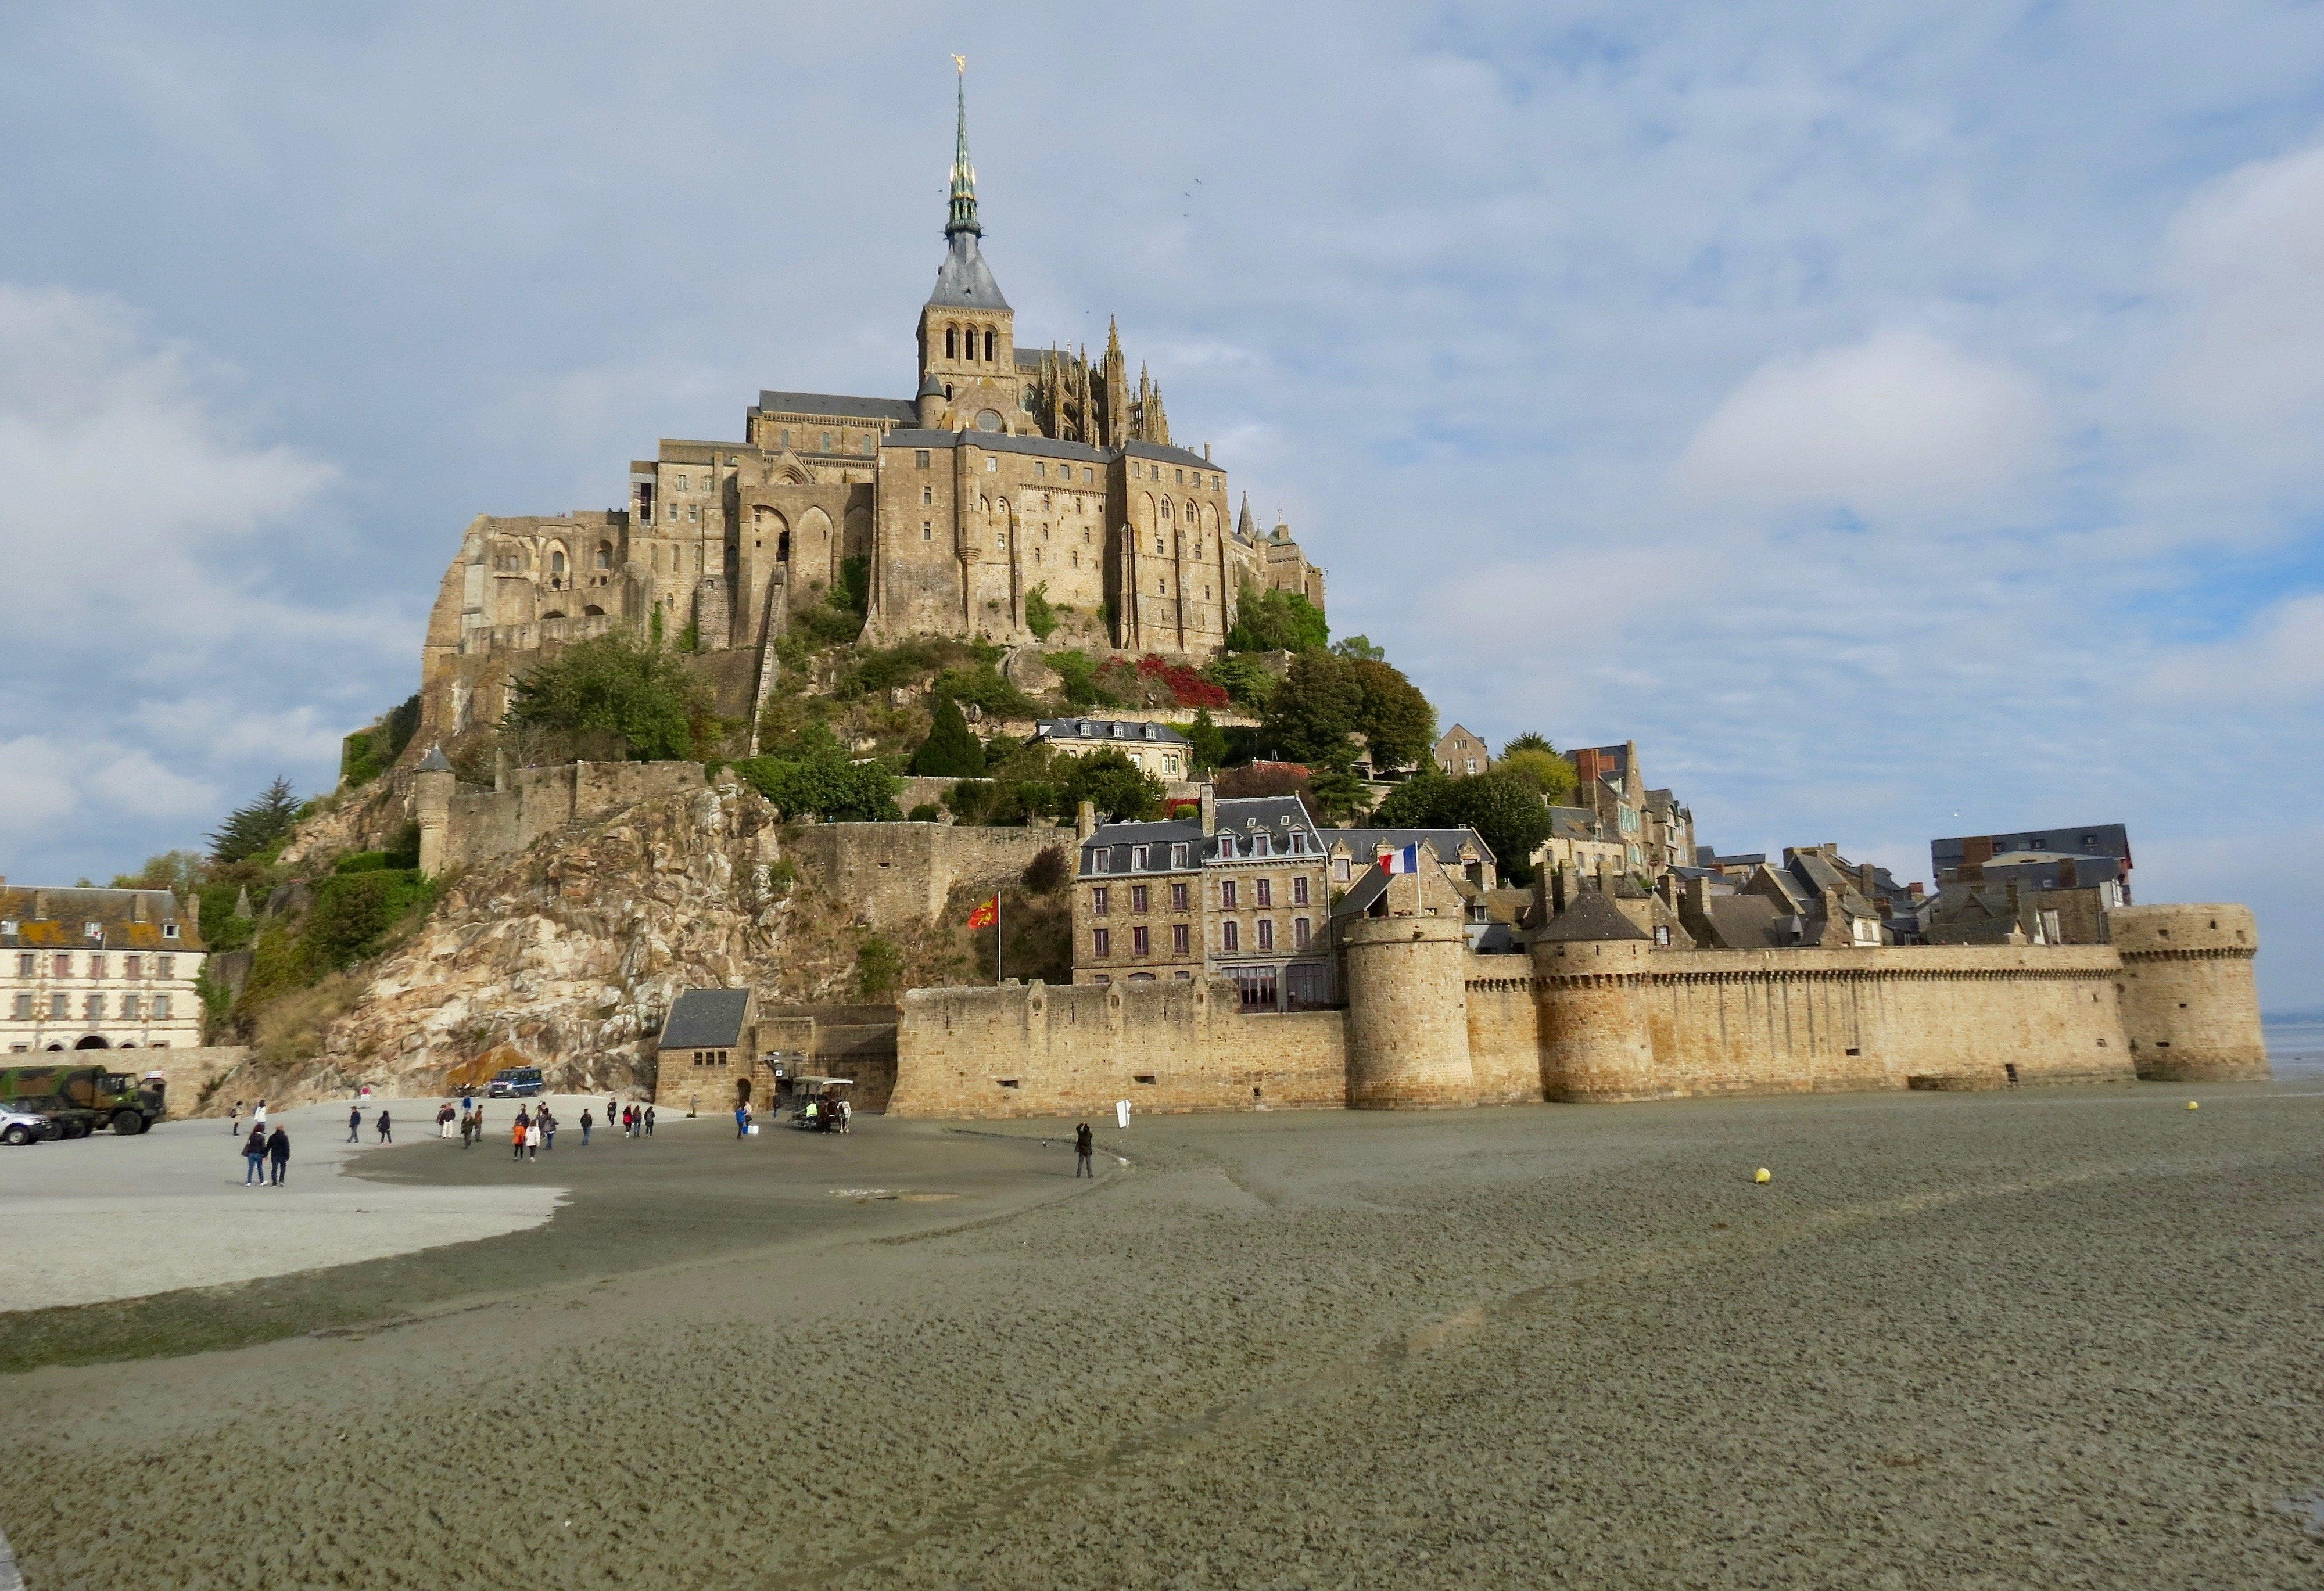 Famous Mont Saint-Michel & Chartres Cathedral–Distant Yet Similar to Each Other